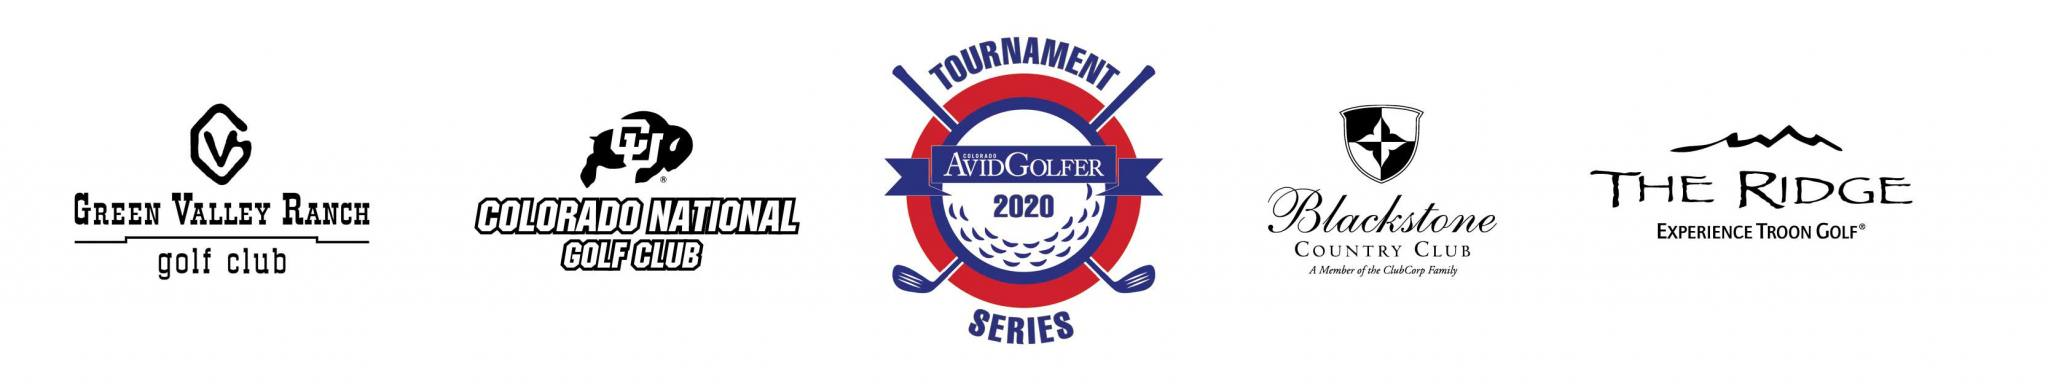 2020 Tournament Series